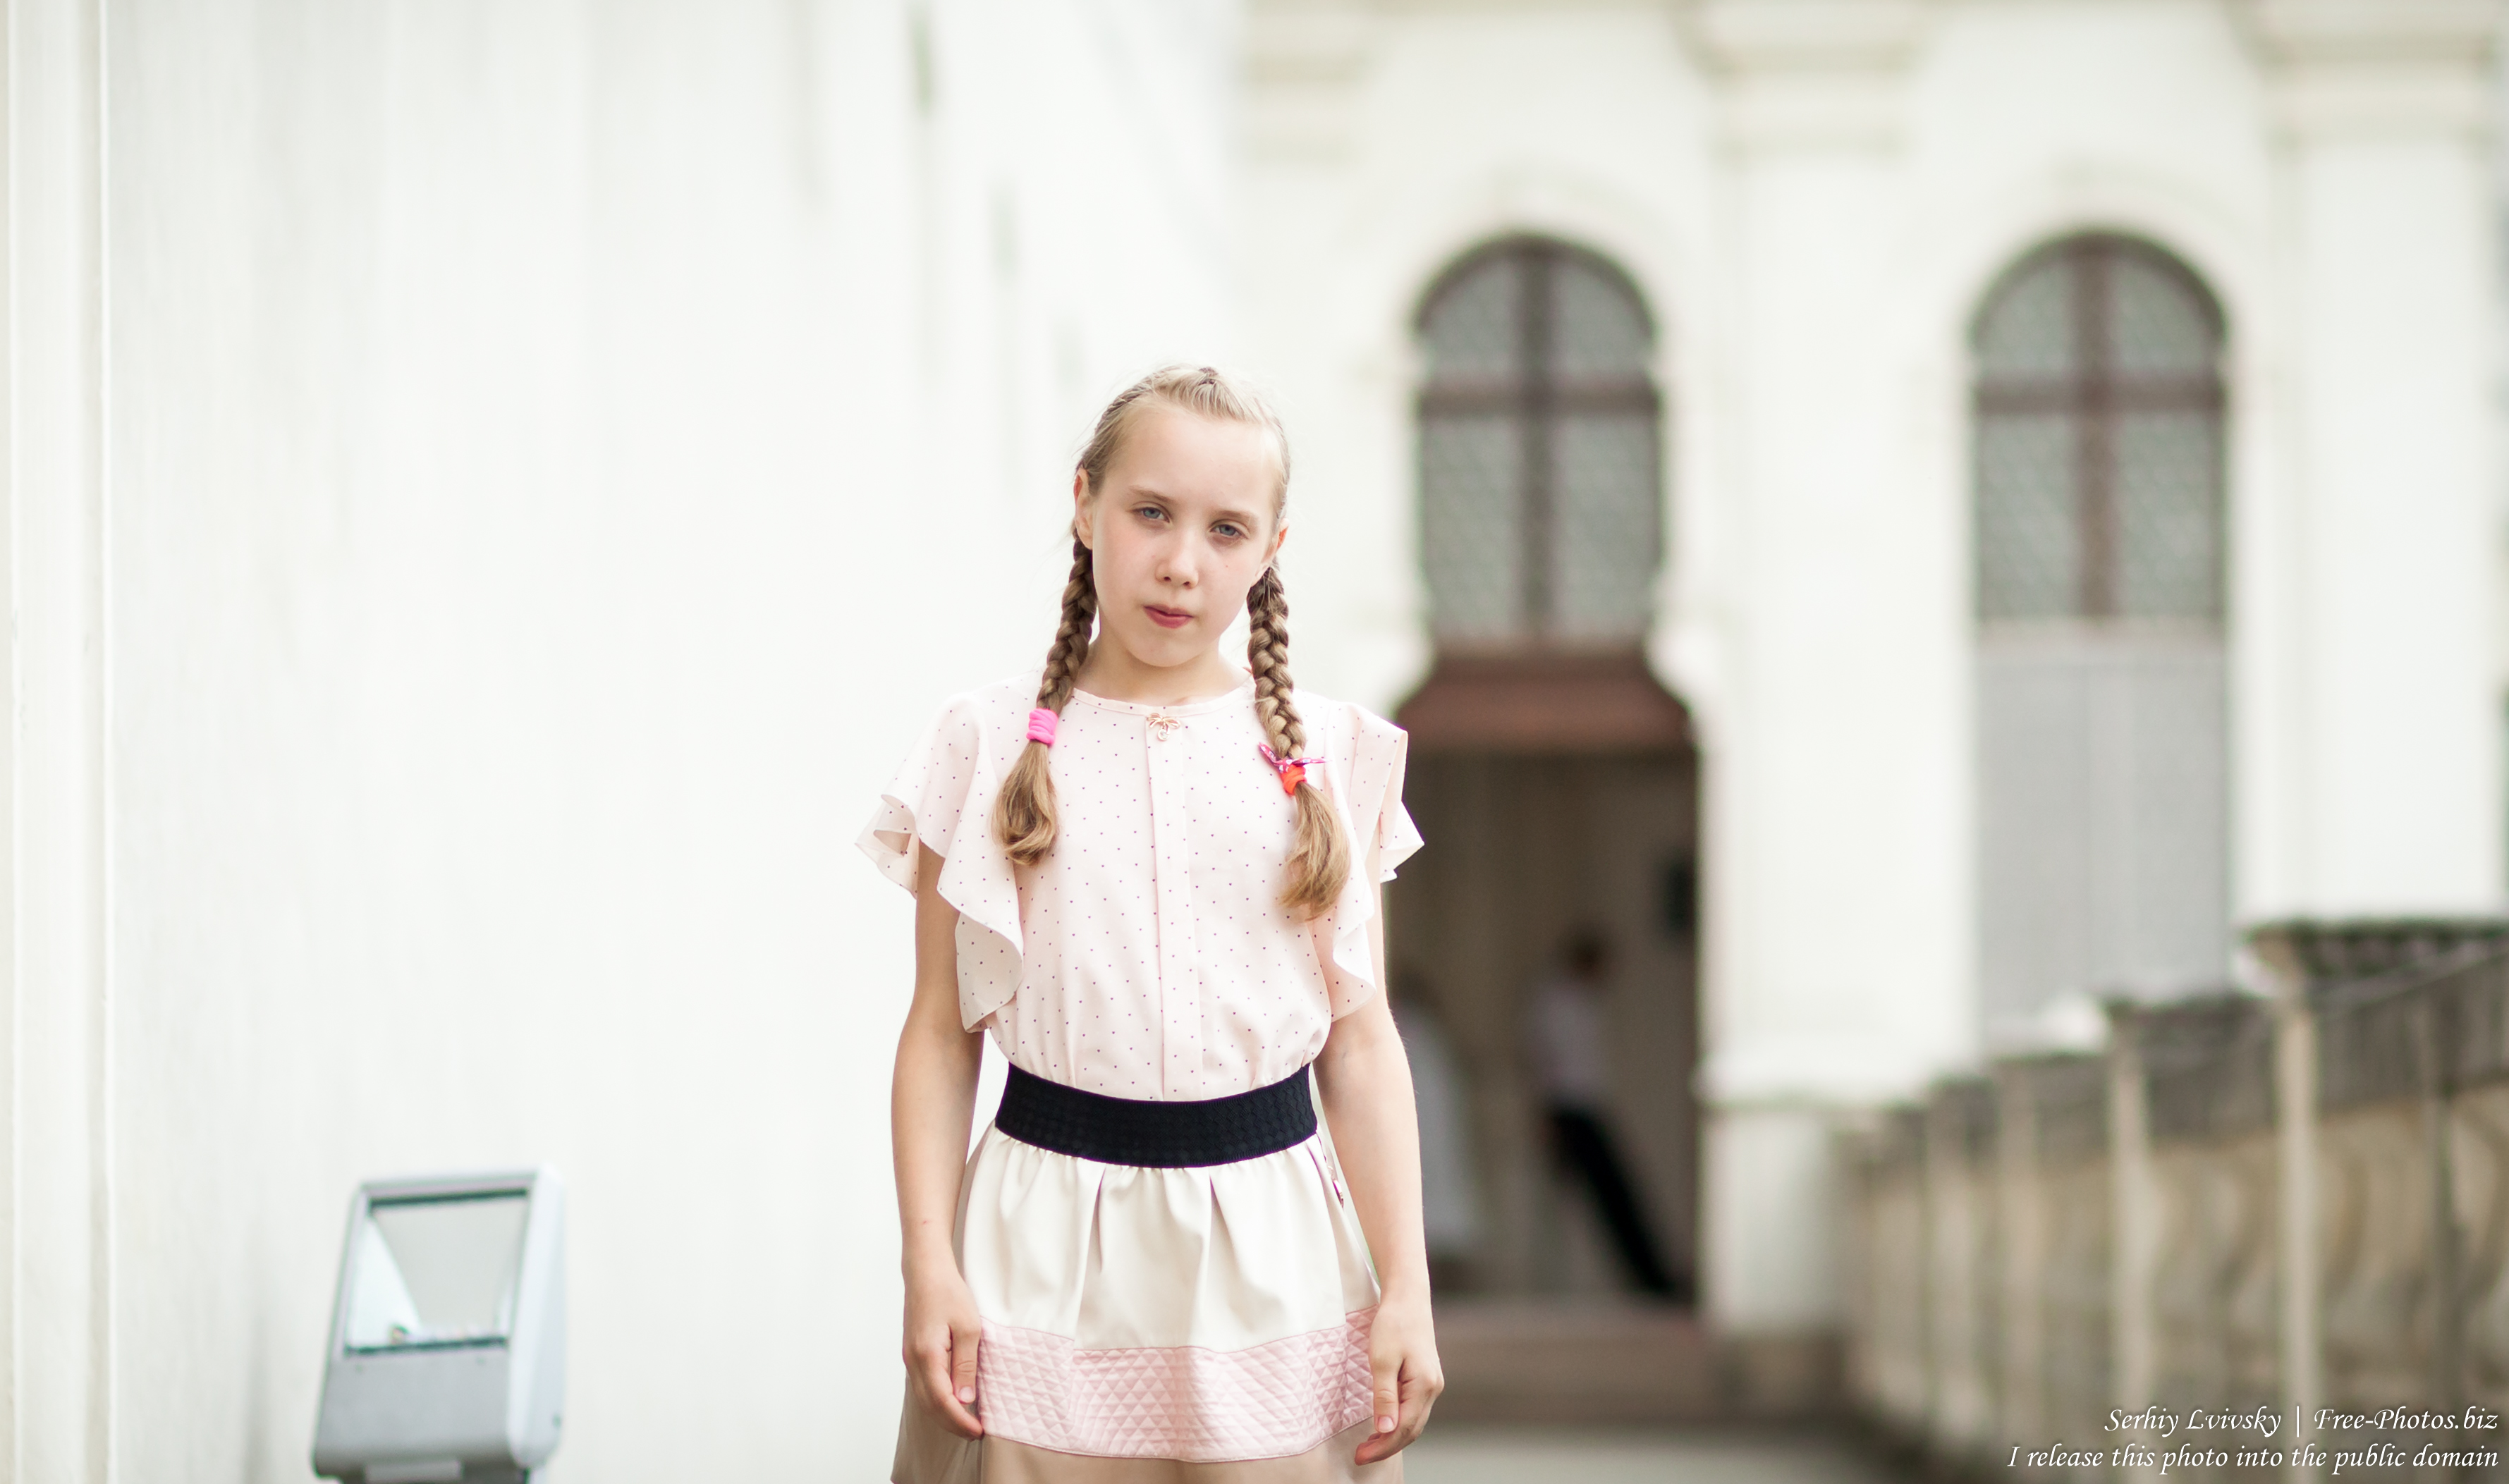 a child girl at Catholic recollections in Poland in July 2017, picture 4